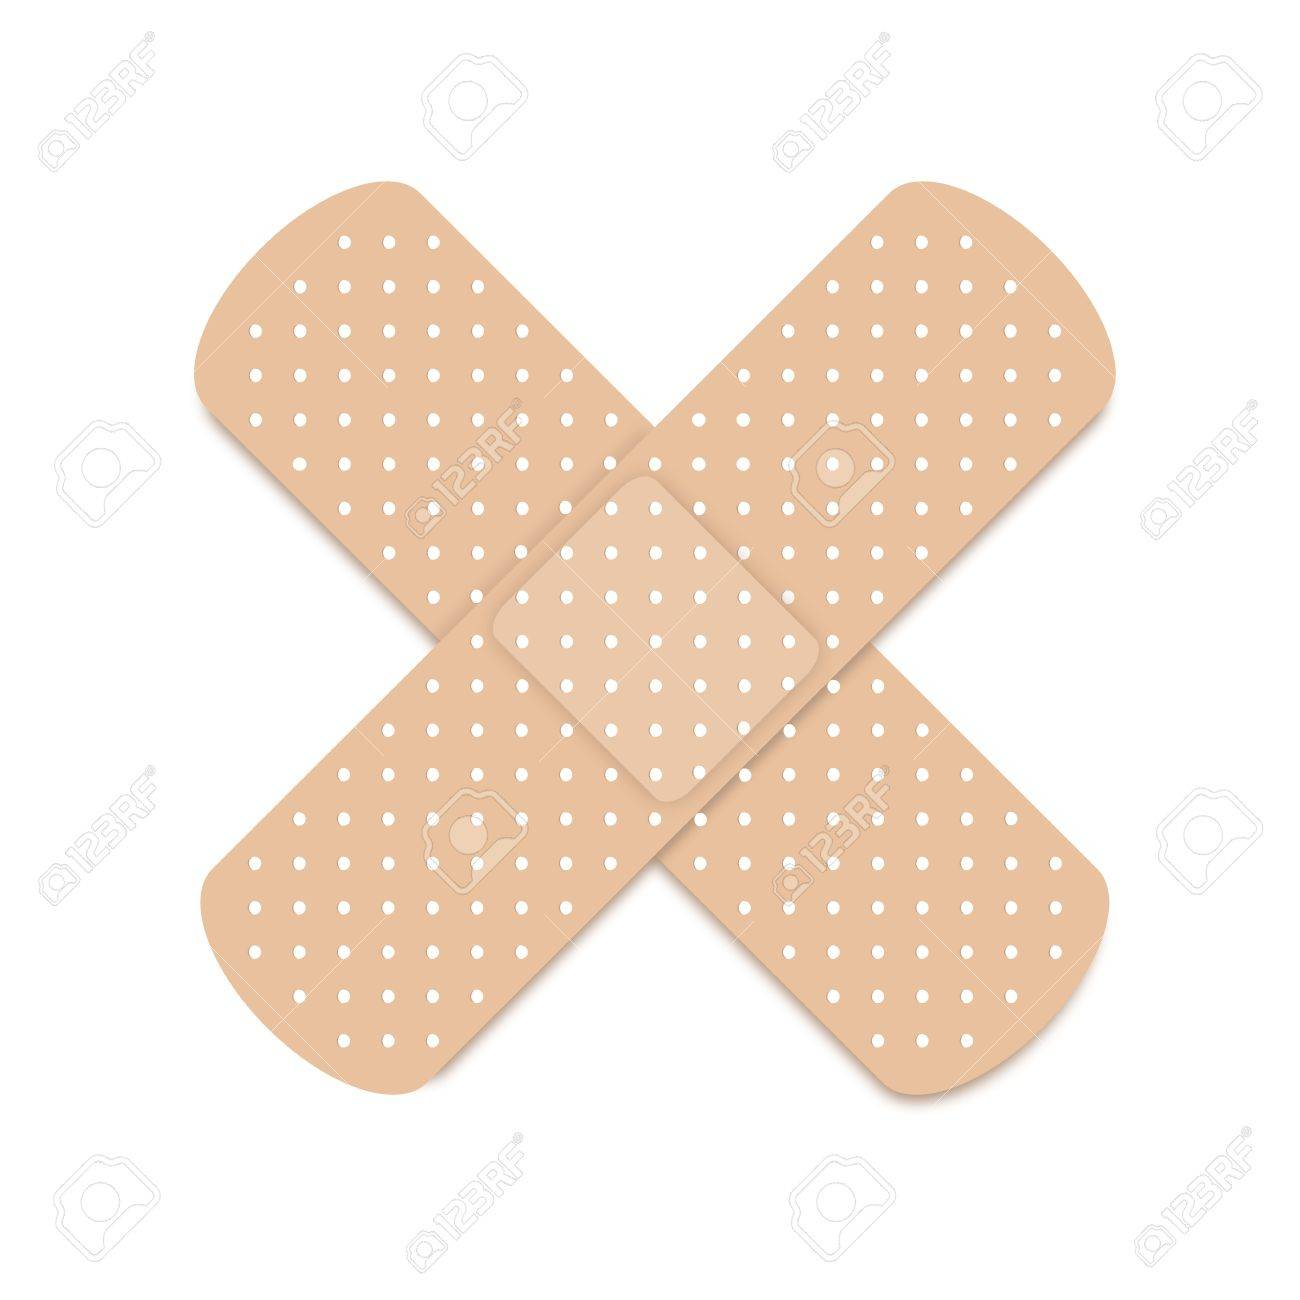 A plaster isolated against a white background Stock Vector - 14420306